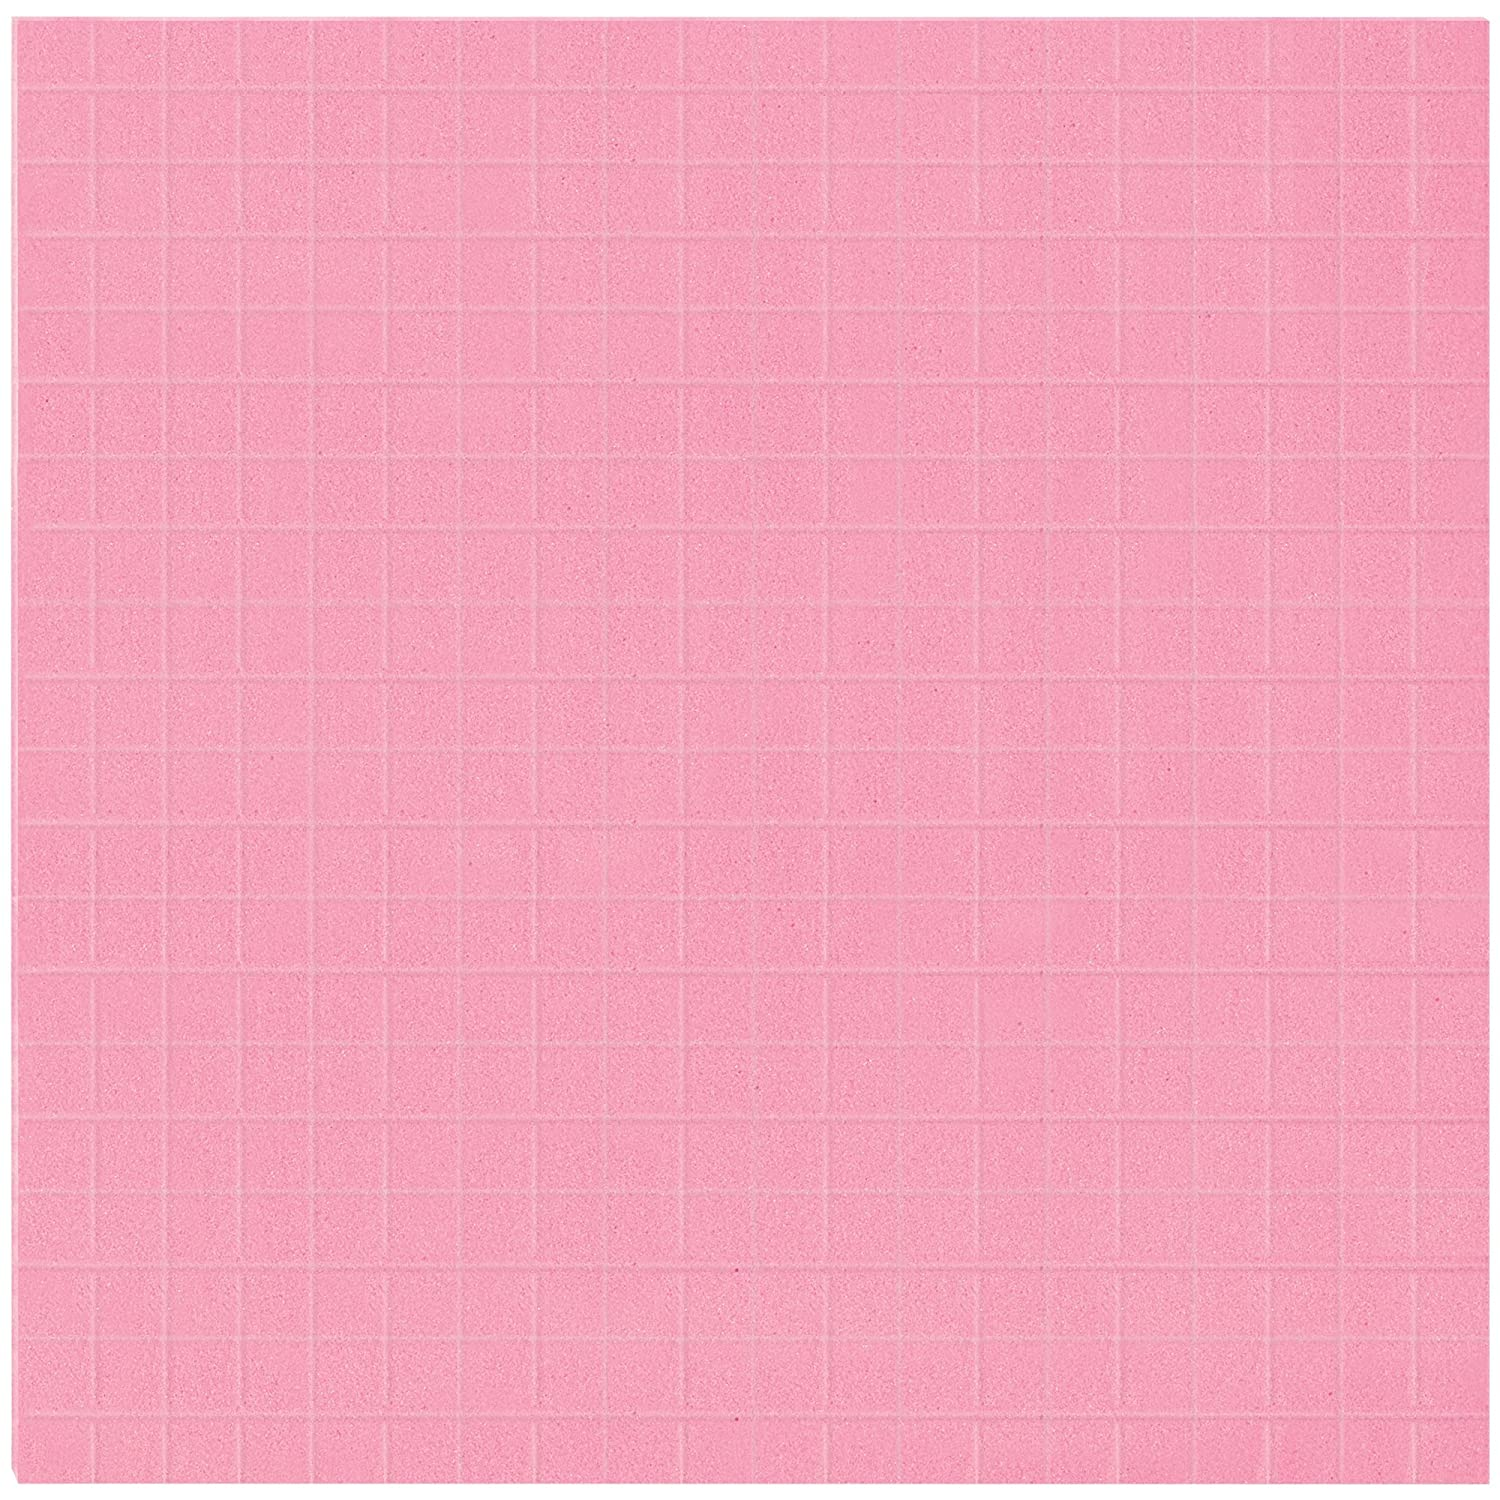 1//2 Squares 24 x 24 x 1 12//Case Anti-Static Pick and Pack Foam Pink